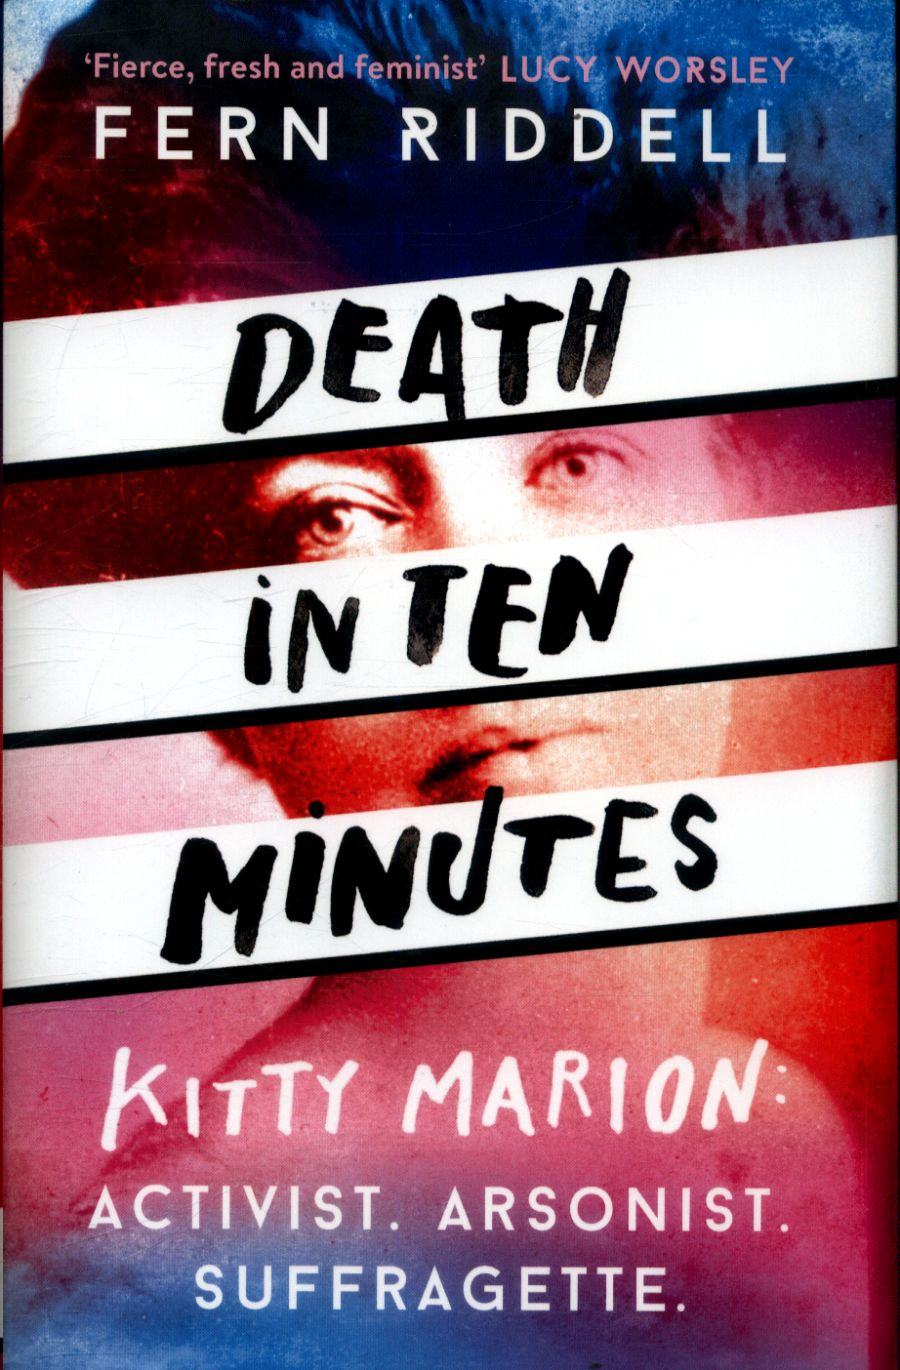 death-in-ten-minutes-kitty-marion-by-fern-riddell